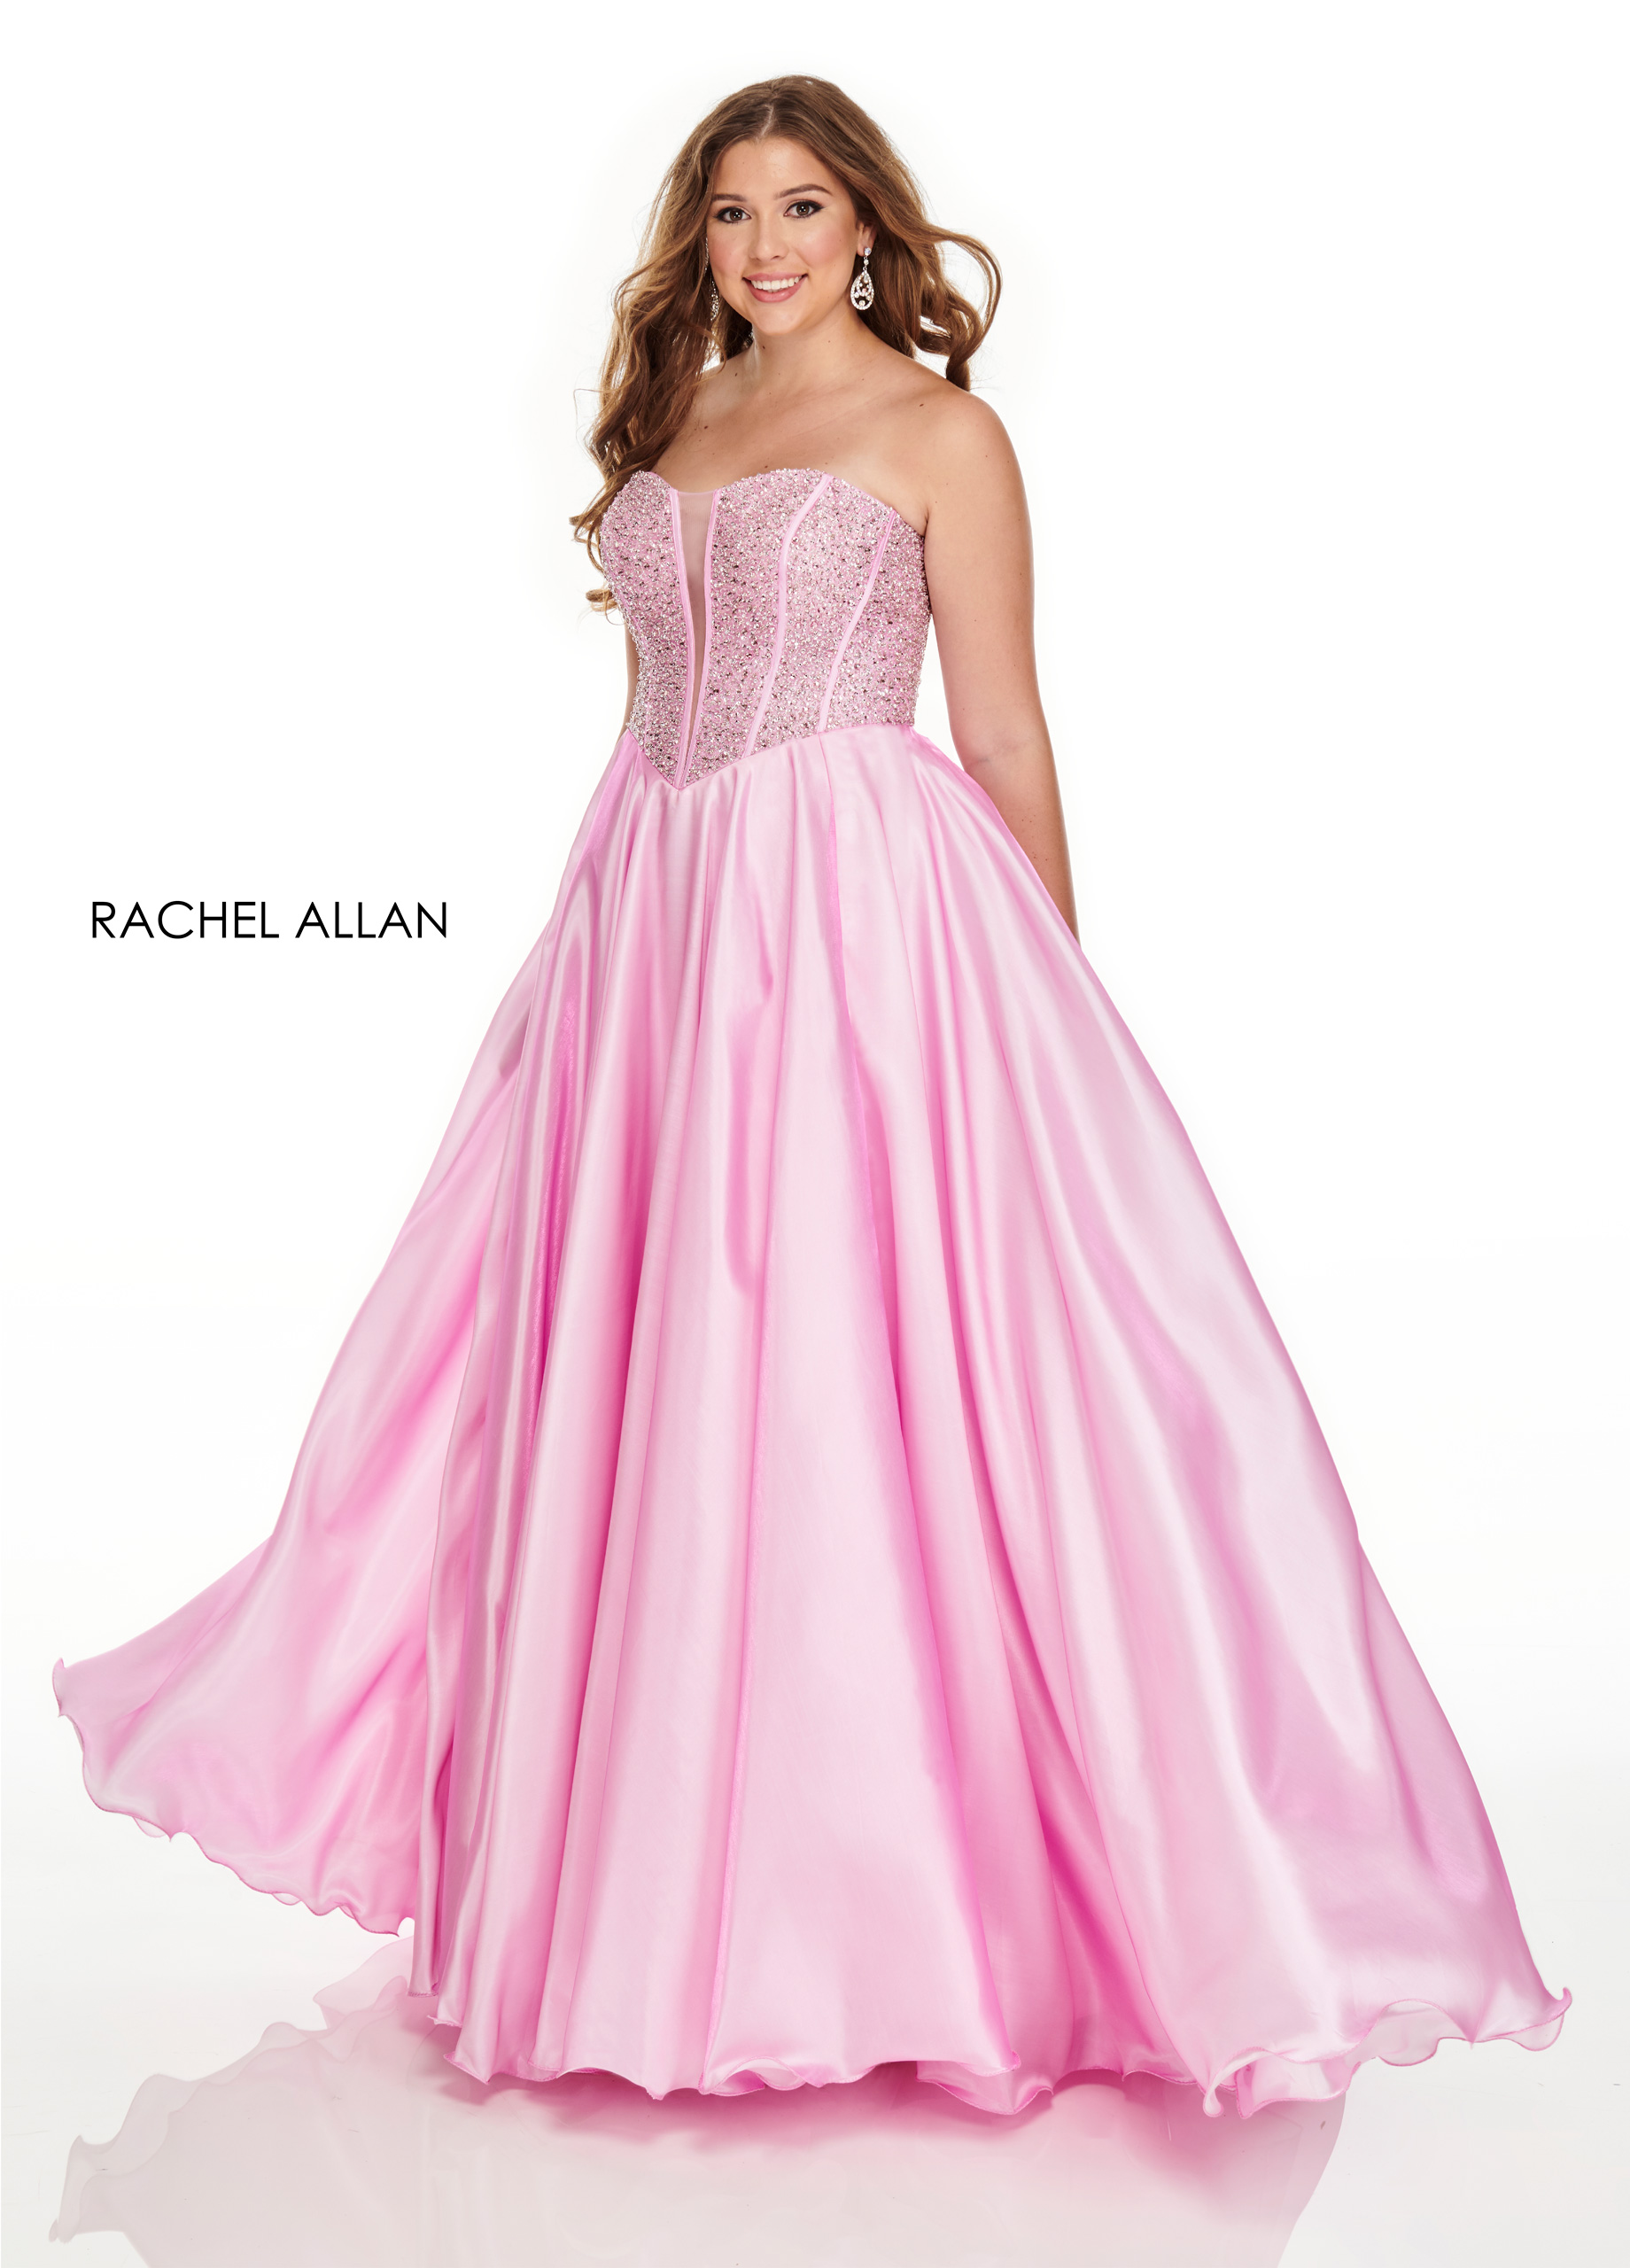 Strapless Ball Gowns Plus Size Dresses in Blush Color